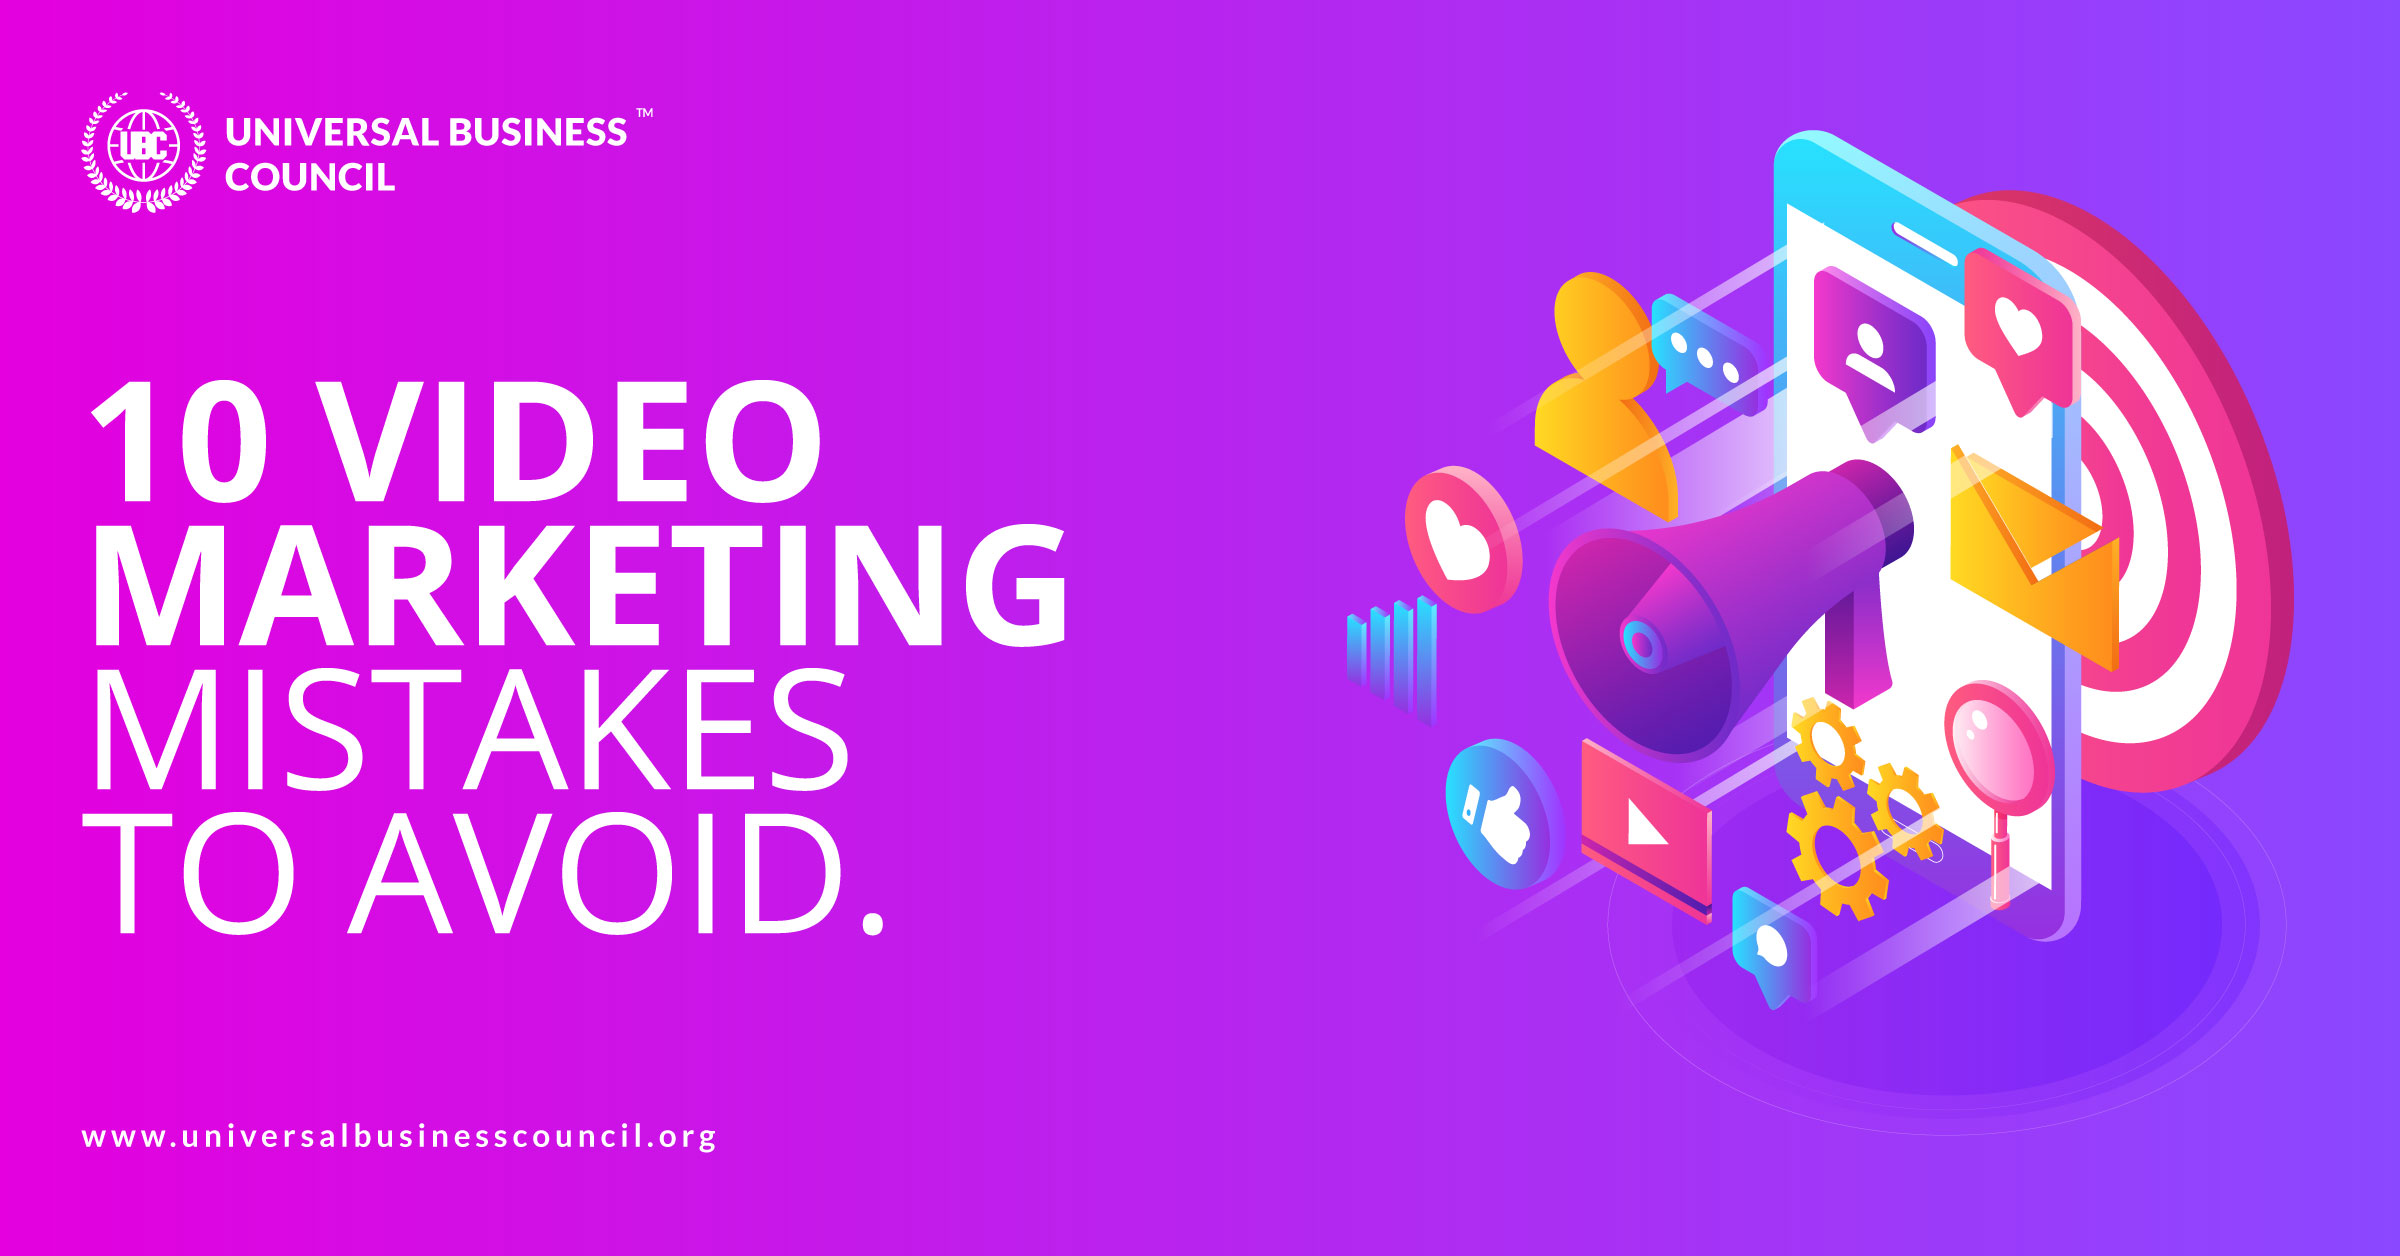 10-video-marketing-mistakes-to-avoid